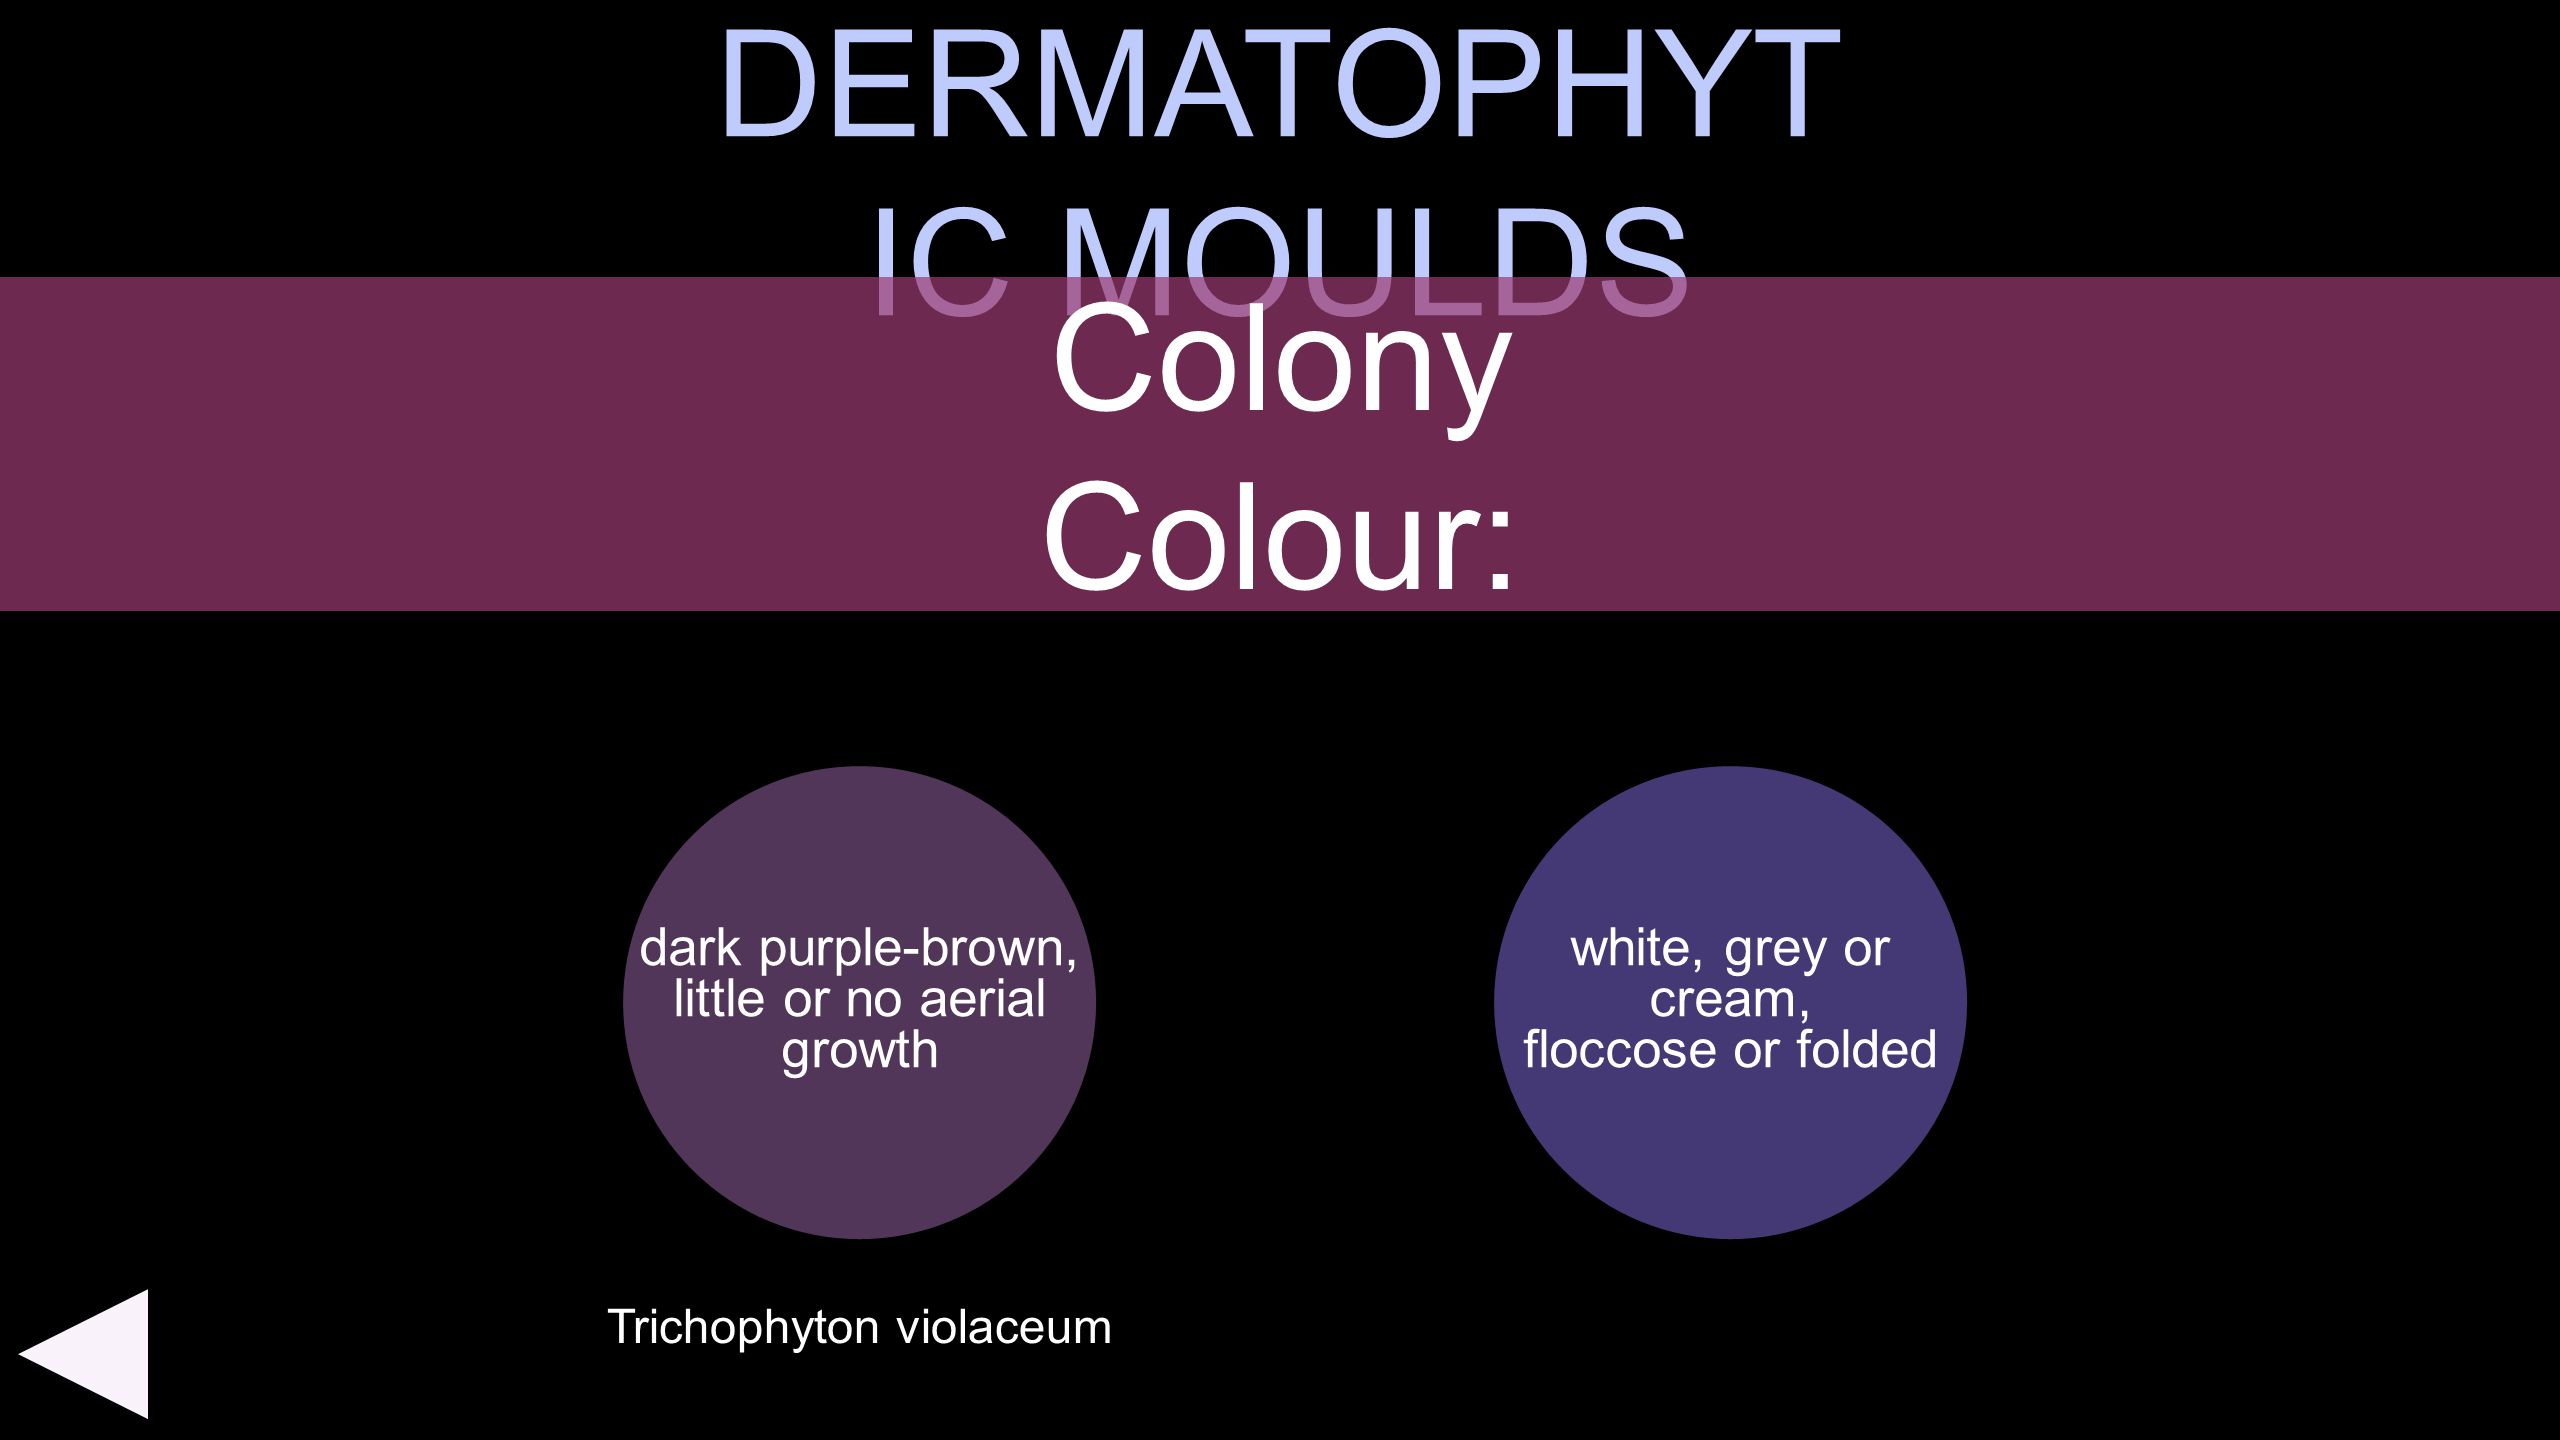 DERMATOPHYTIC MOULDS Colony Colour: dark purple-brown,